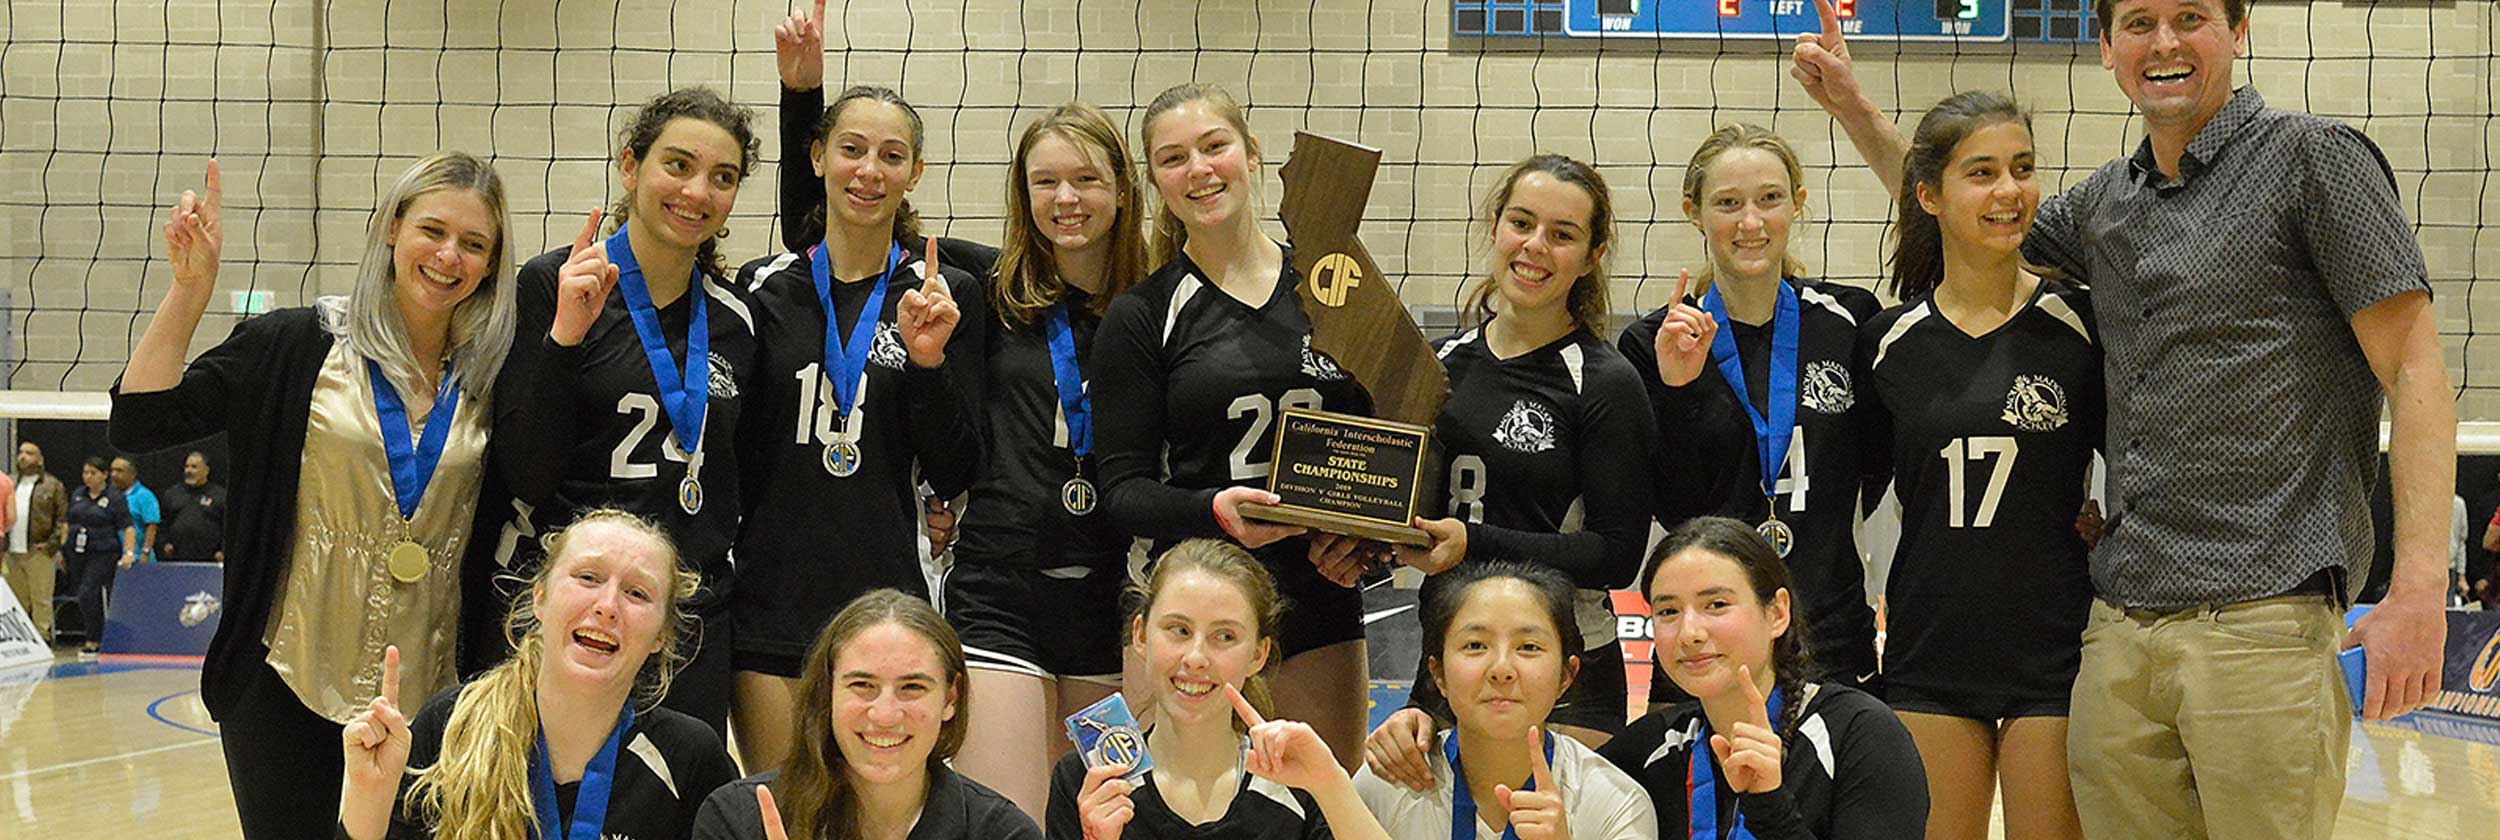 2019 girls volleyball state champions